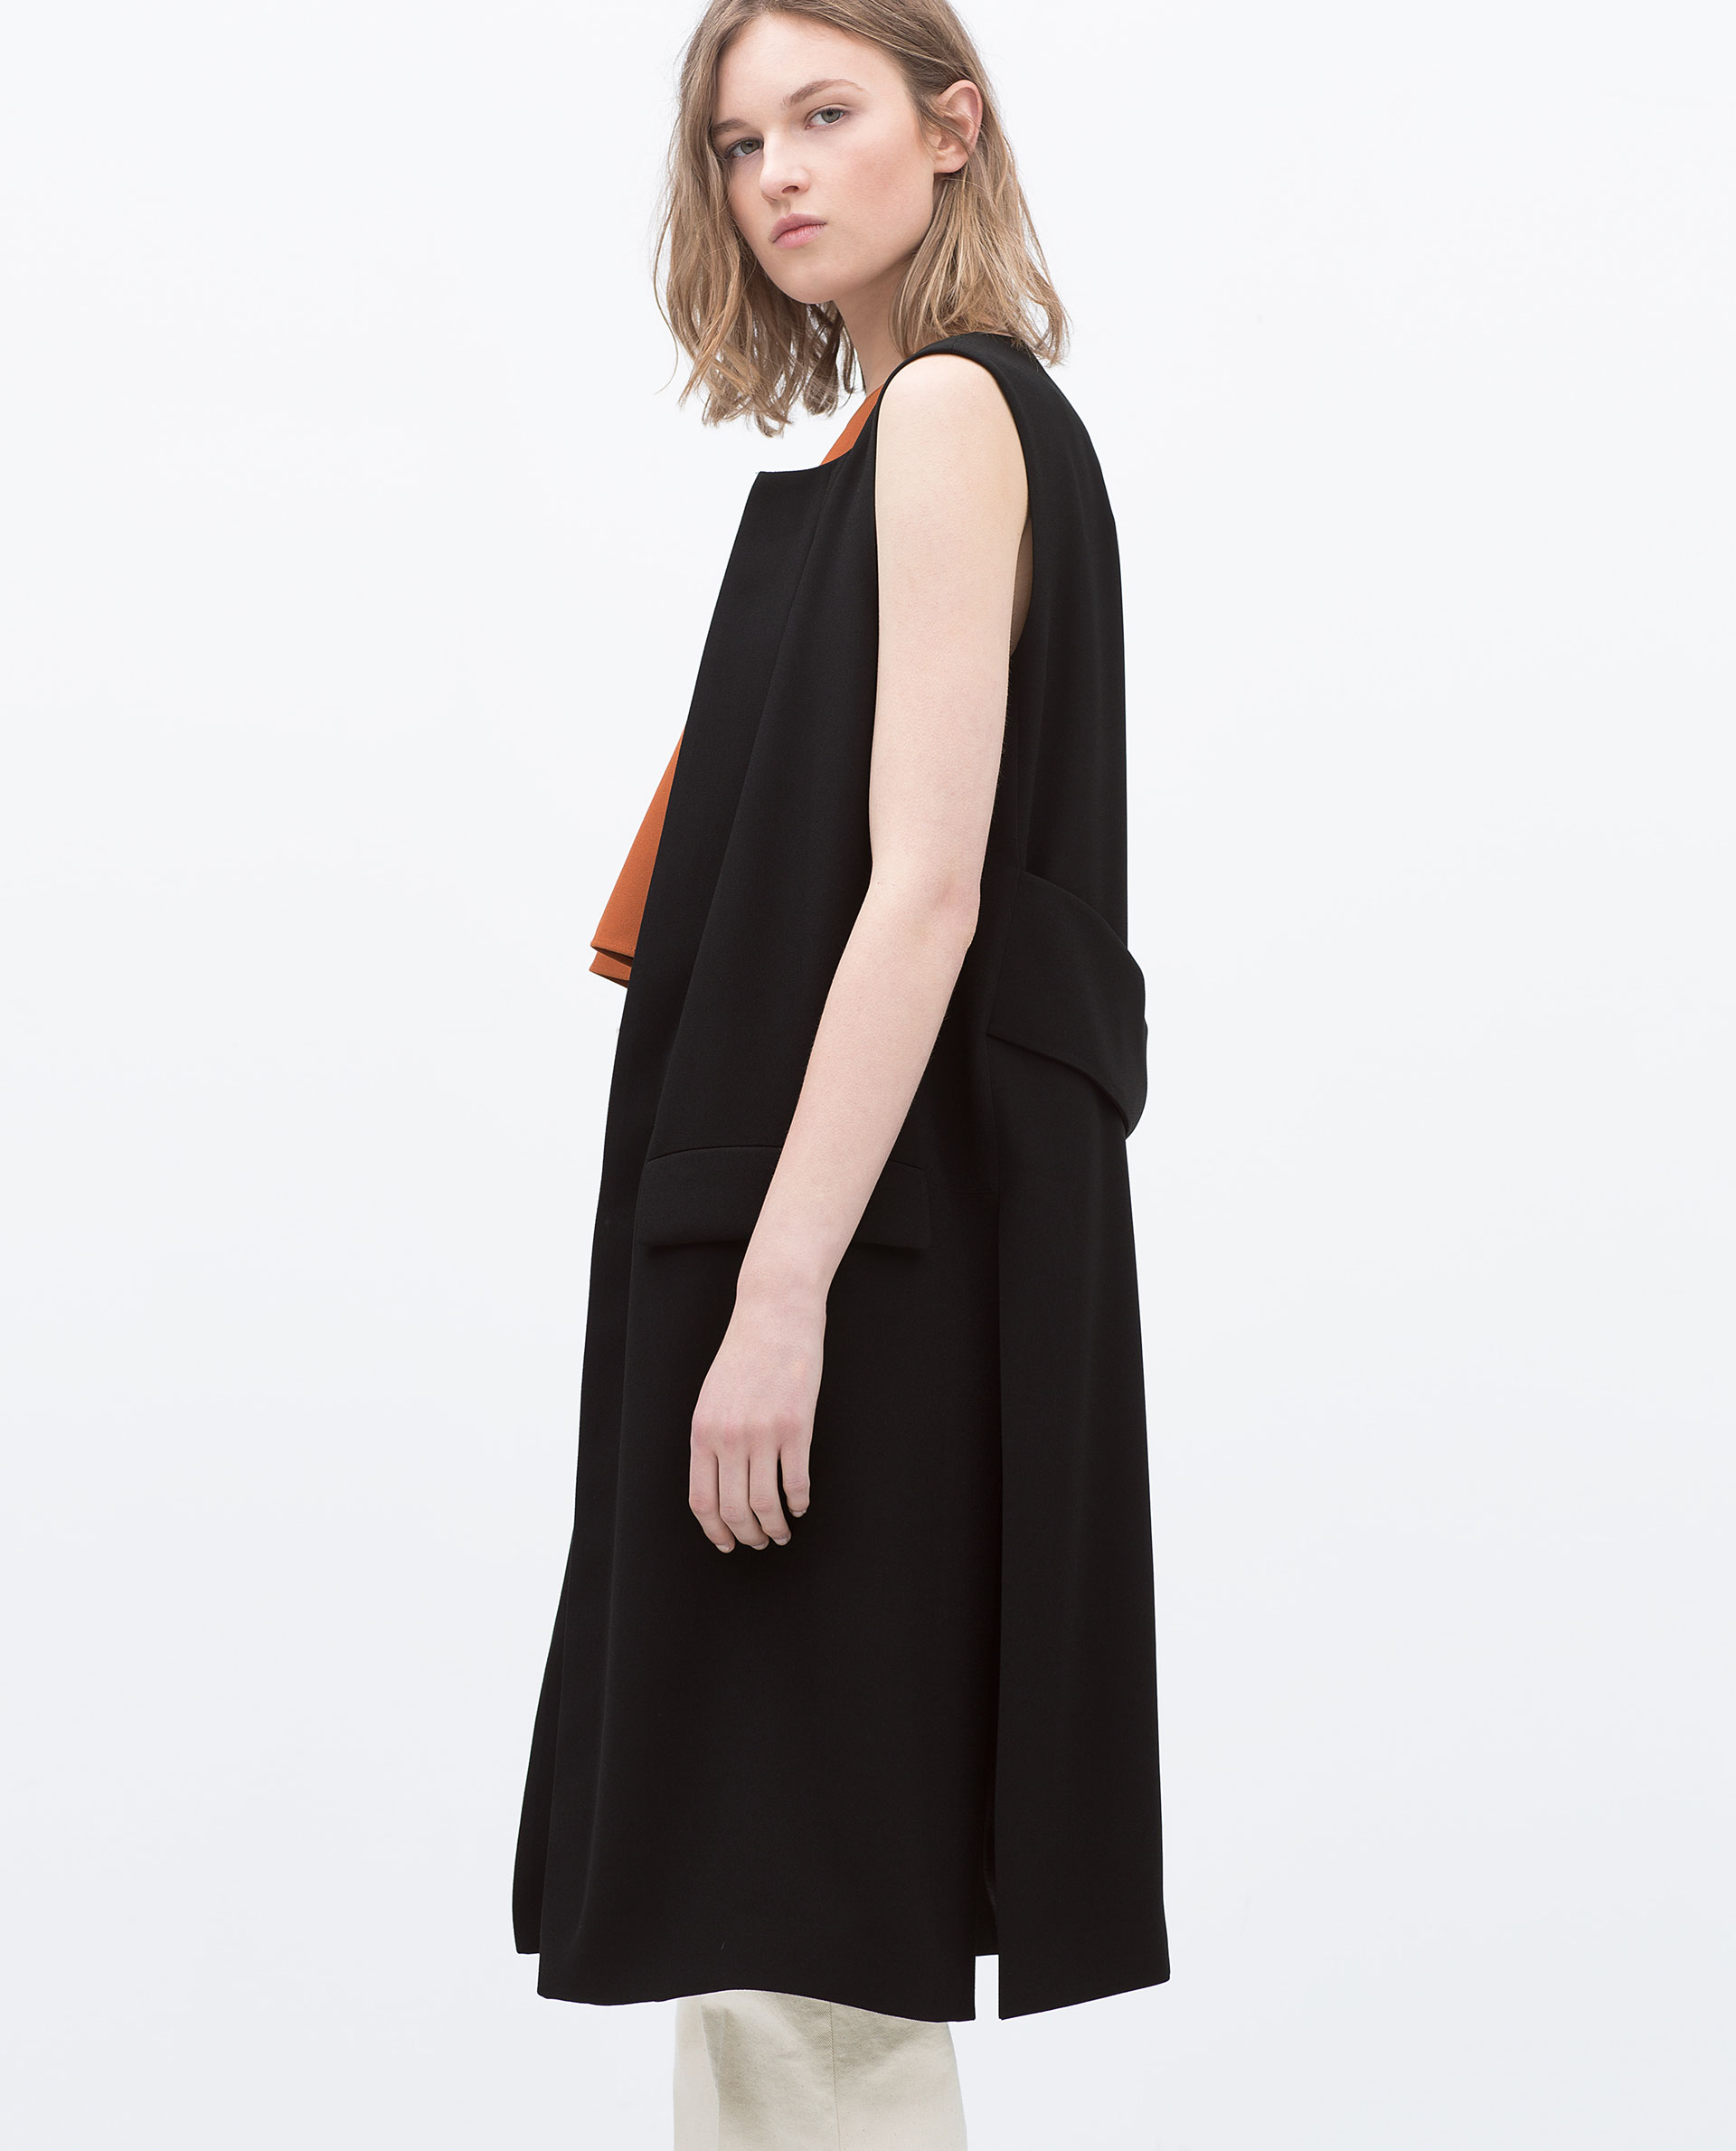 Zara's biannual sale is finally here and we are FREAKING OUT at all of these amazing deals – like, you can expect to see as much as 85% off certain products! The sale started on Dec. 28 and will last five to six weeks, giving shoppers plenty of time to enjoy and get everything they had their eyes on .